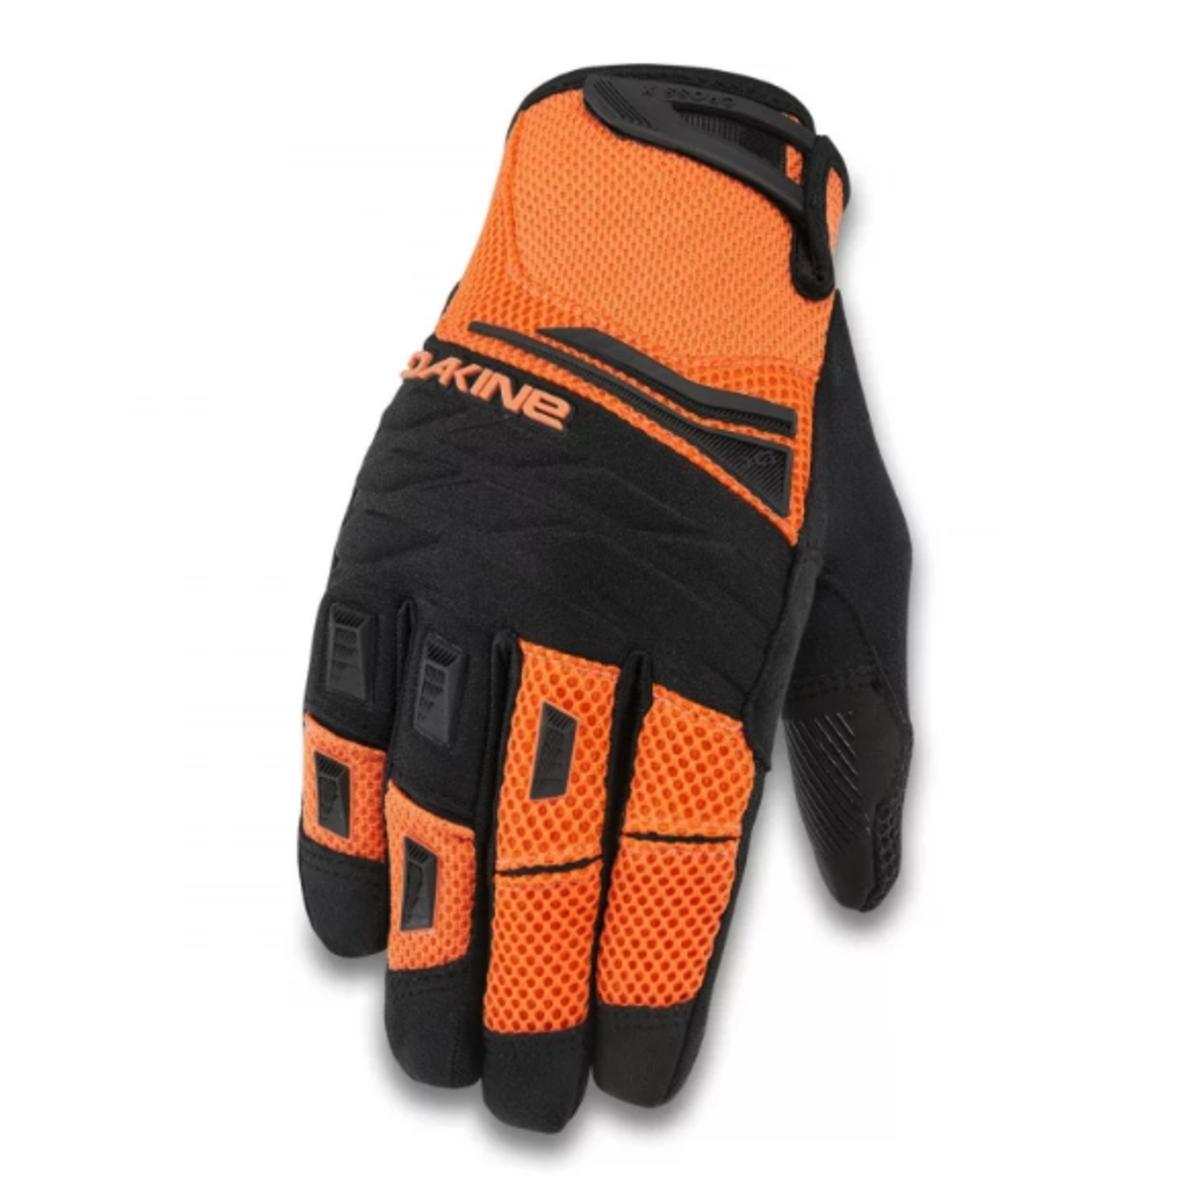 Dakine Cross-X Men's Bike Gloves